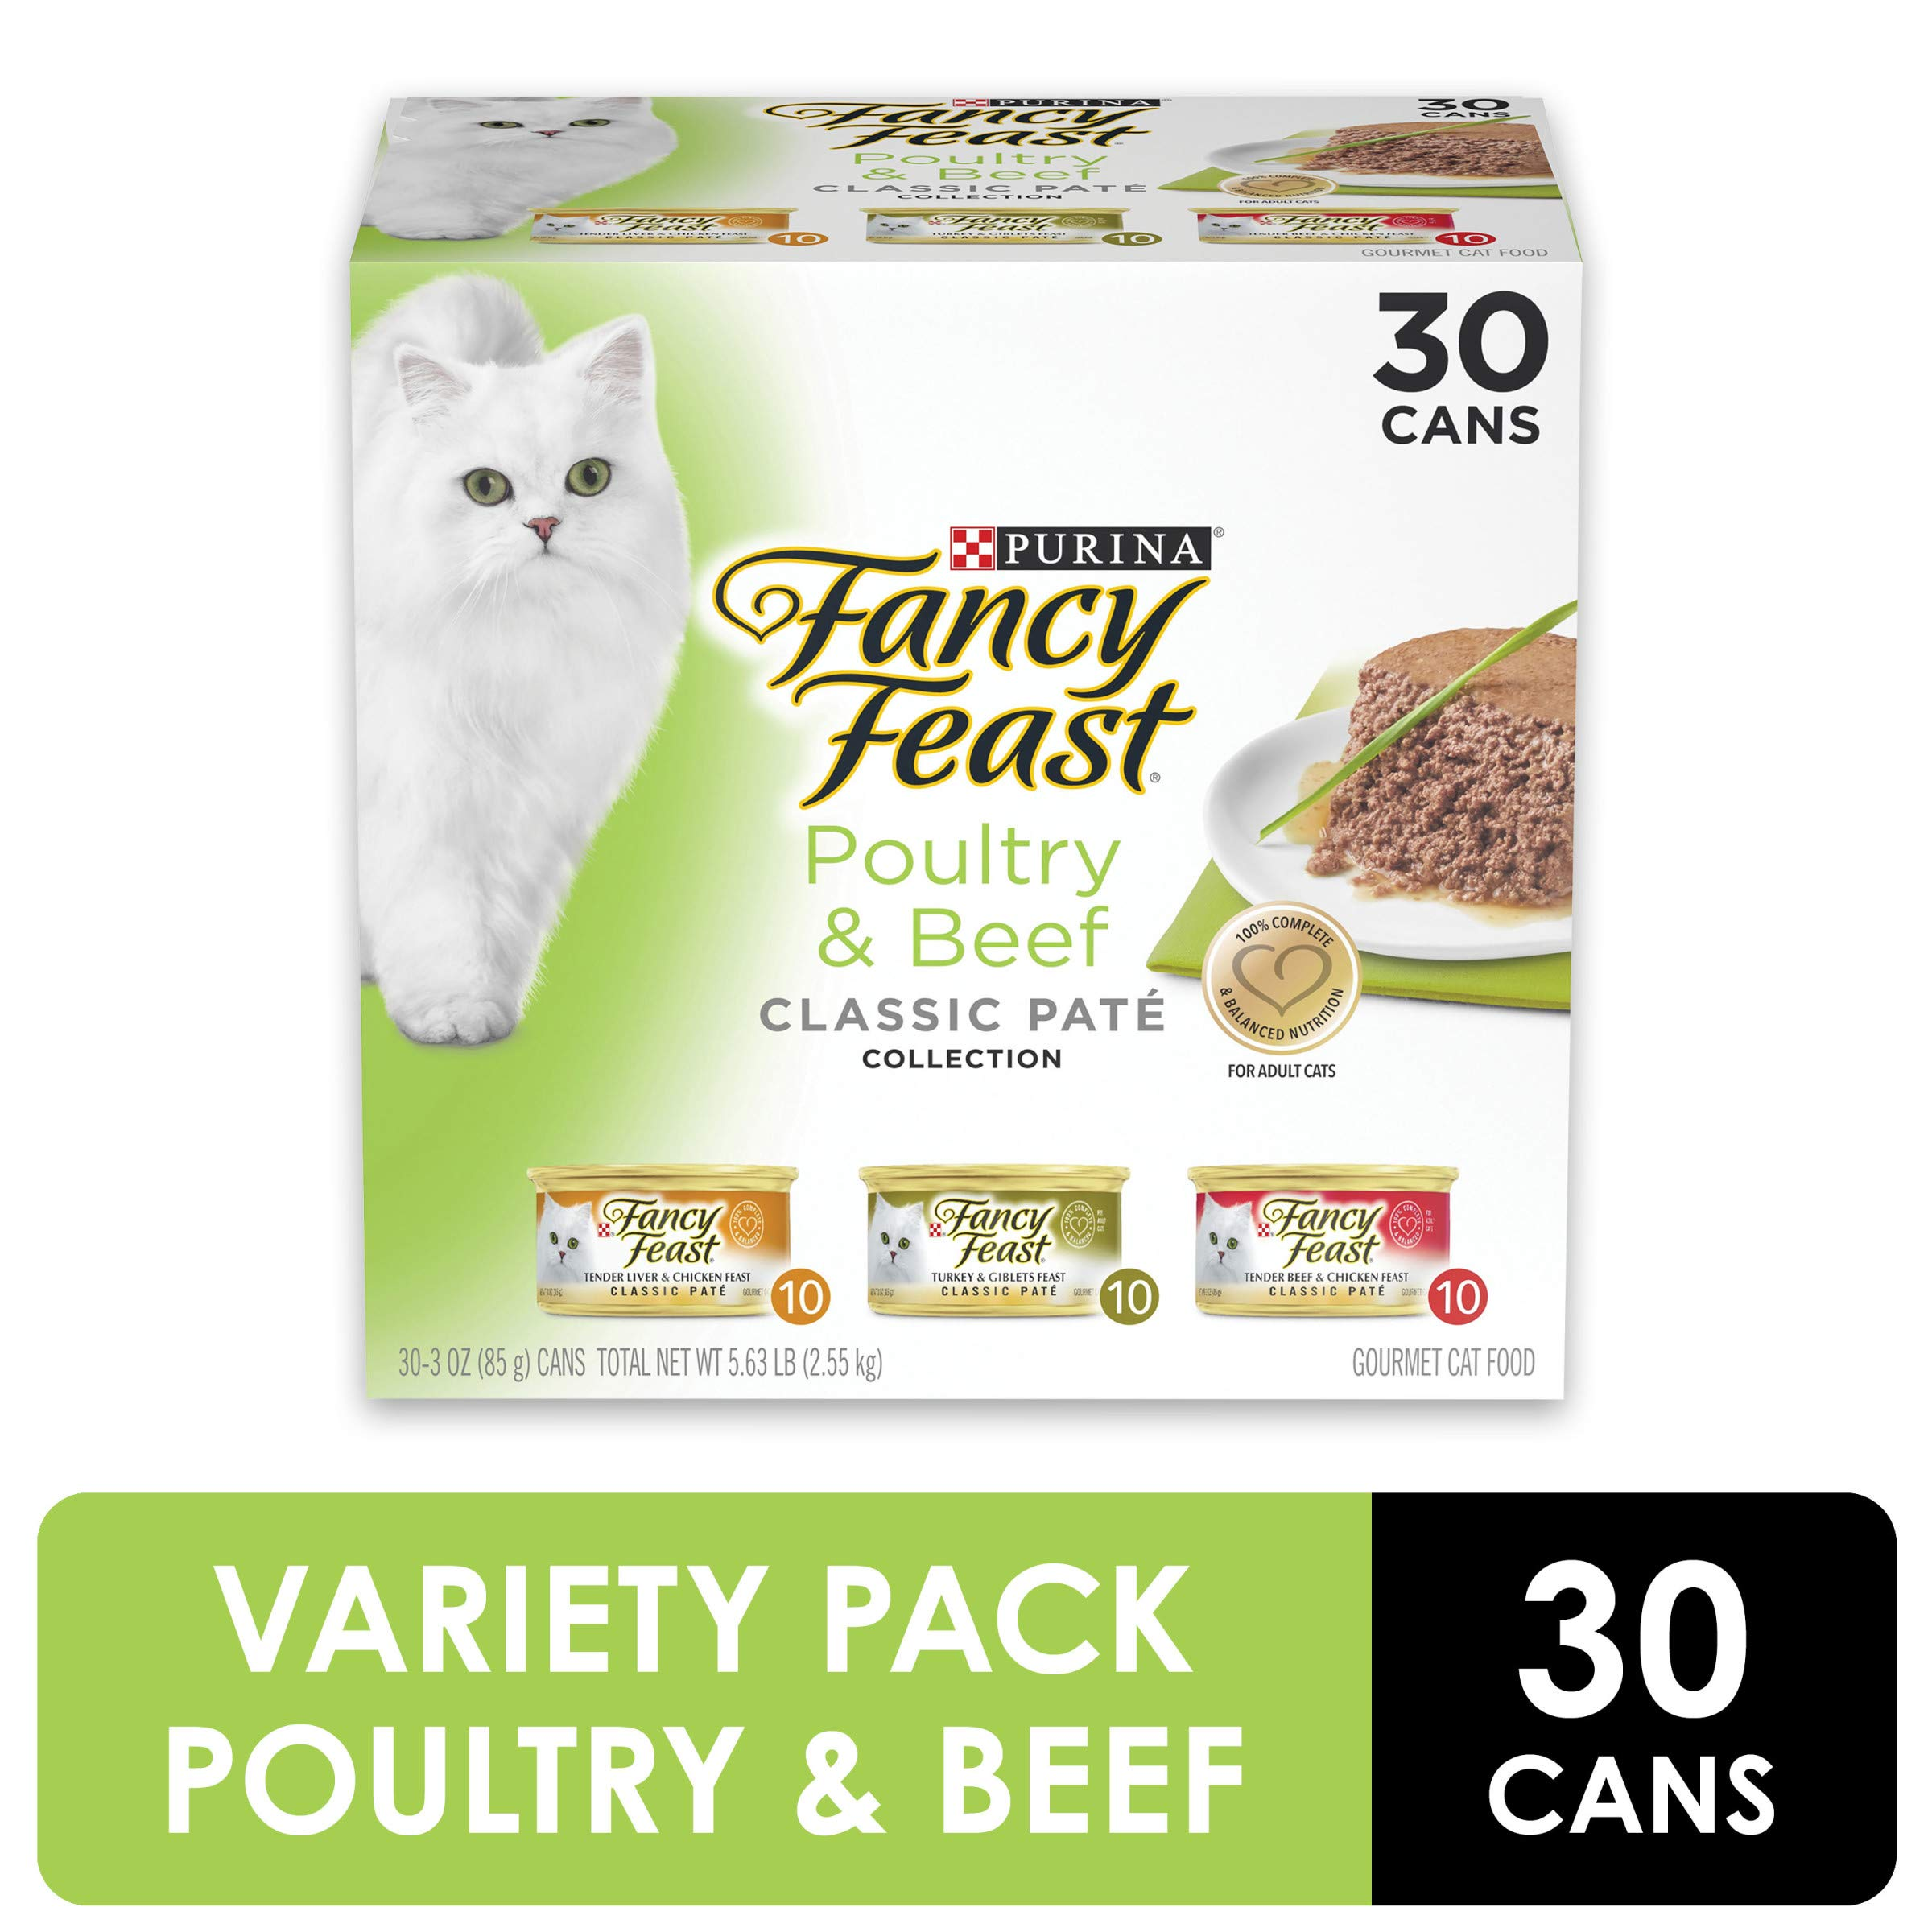 Purina Fancy Feast Grain Free Pate Wet Cat Food Variety Pack, Poultry & Beef Collection - (30) 3 oz. Cans by Purina Fancy Feast